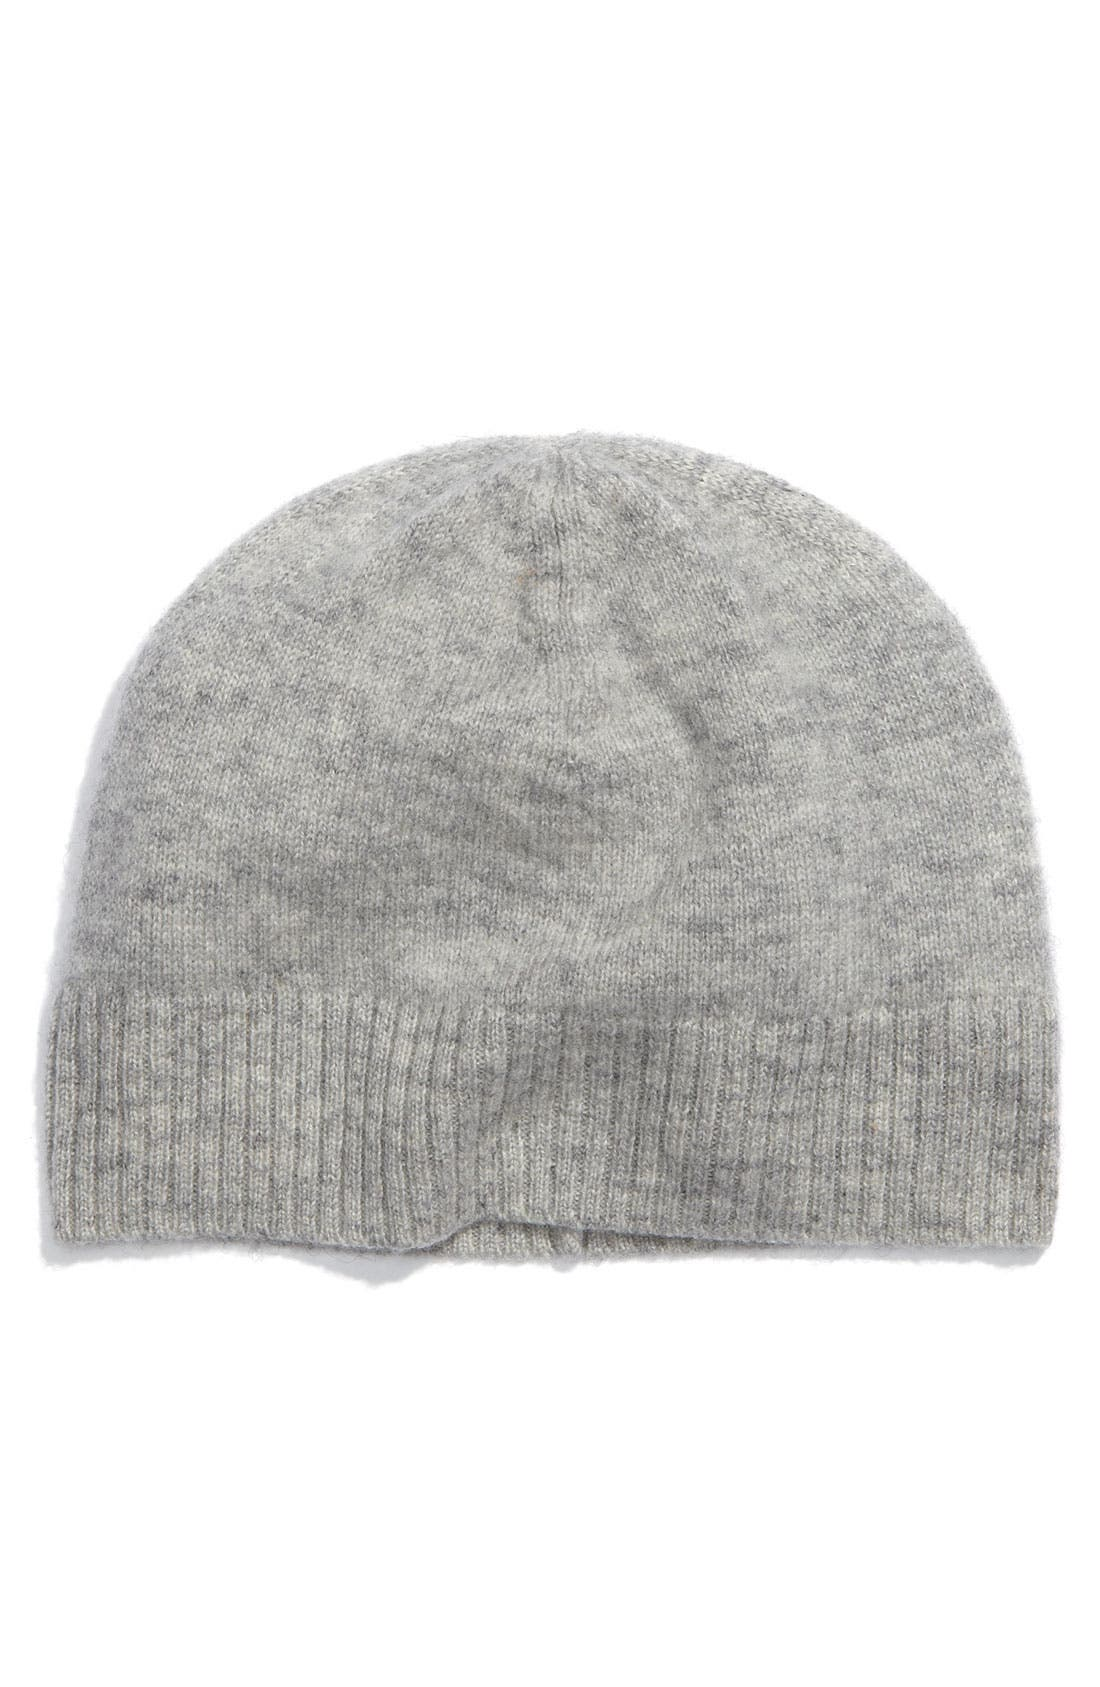 NORDSTROM BABY Cashmere Hat, Main, color, 020